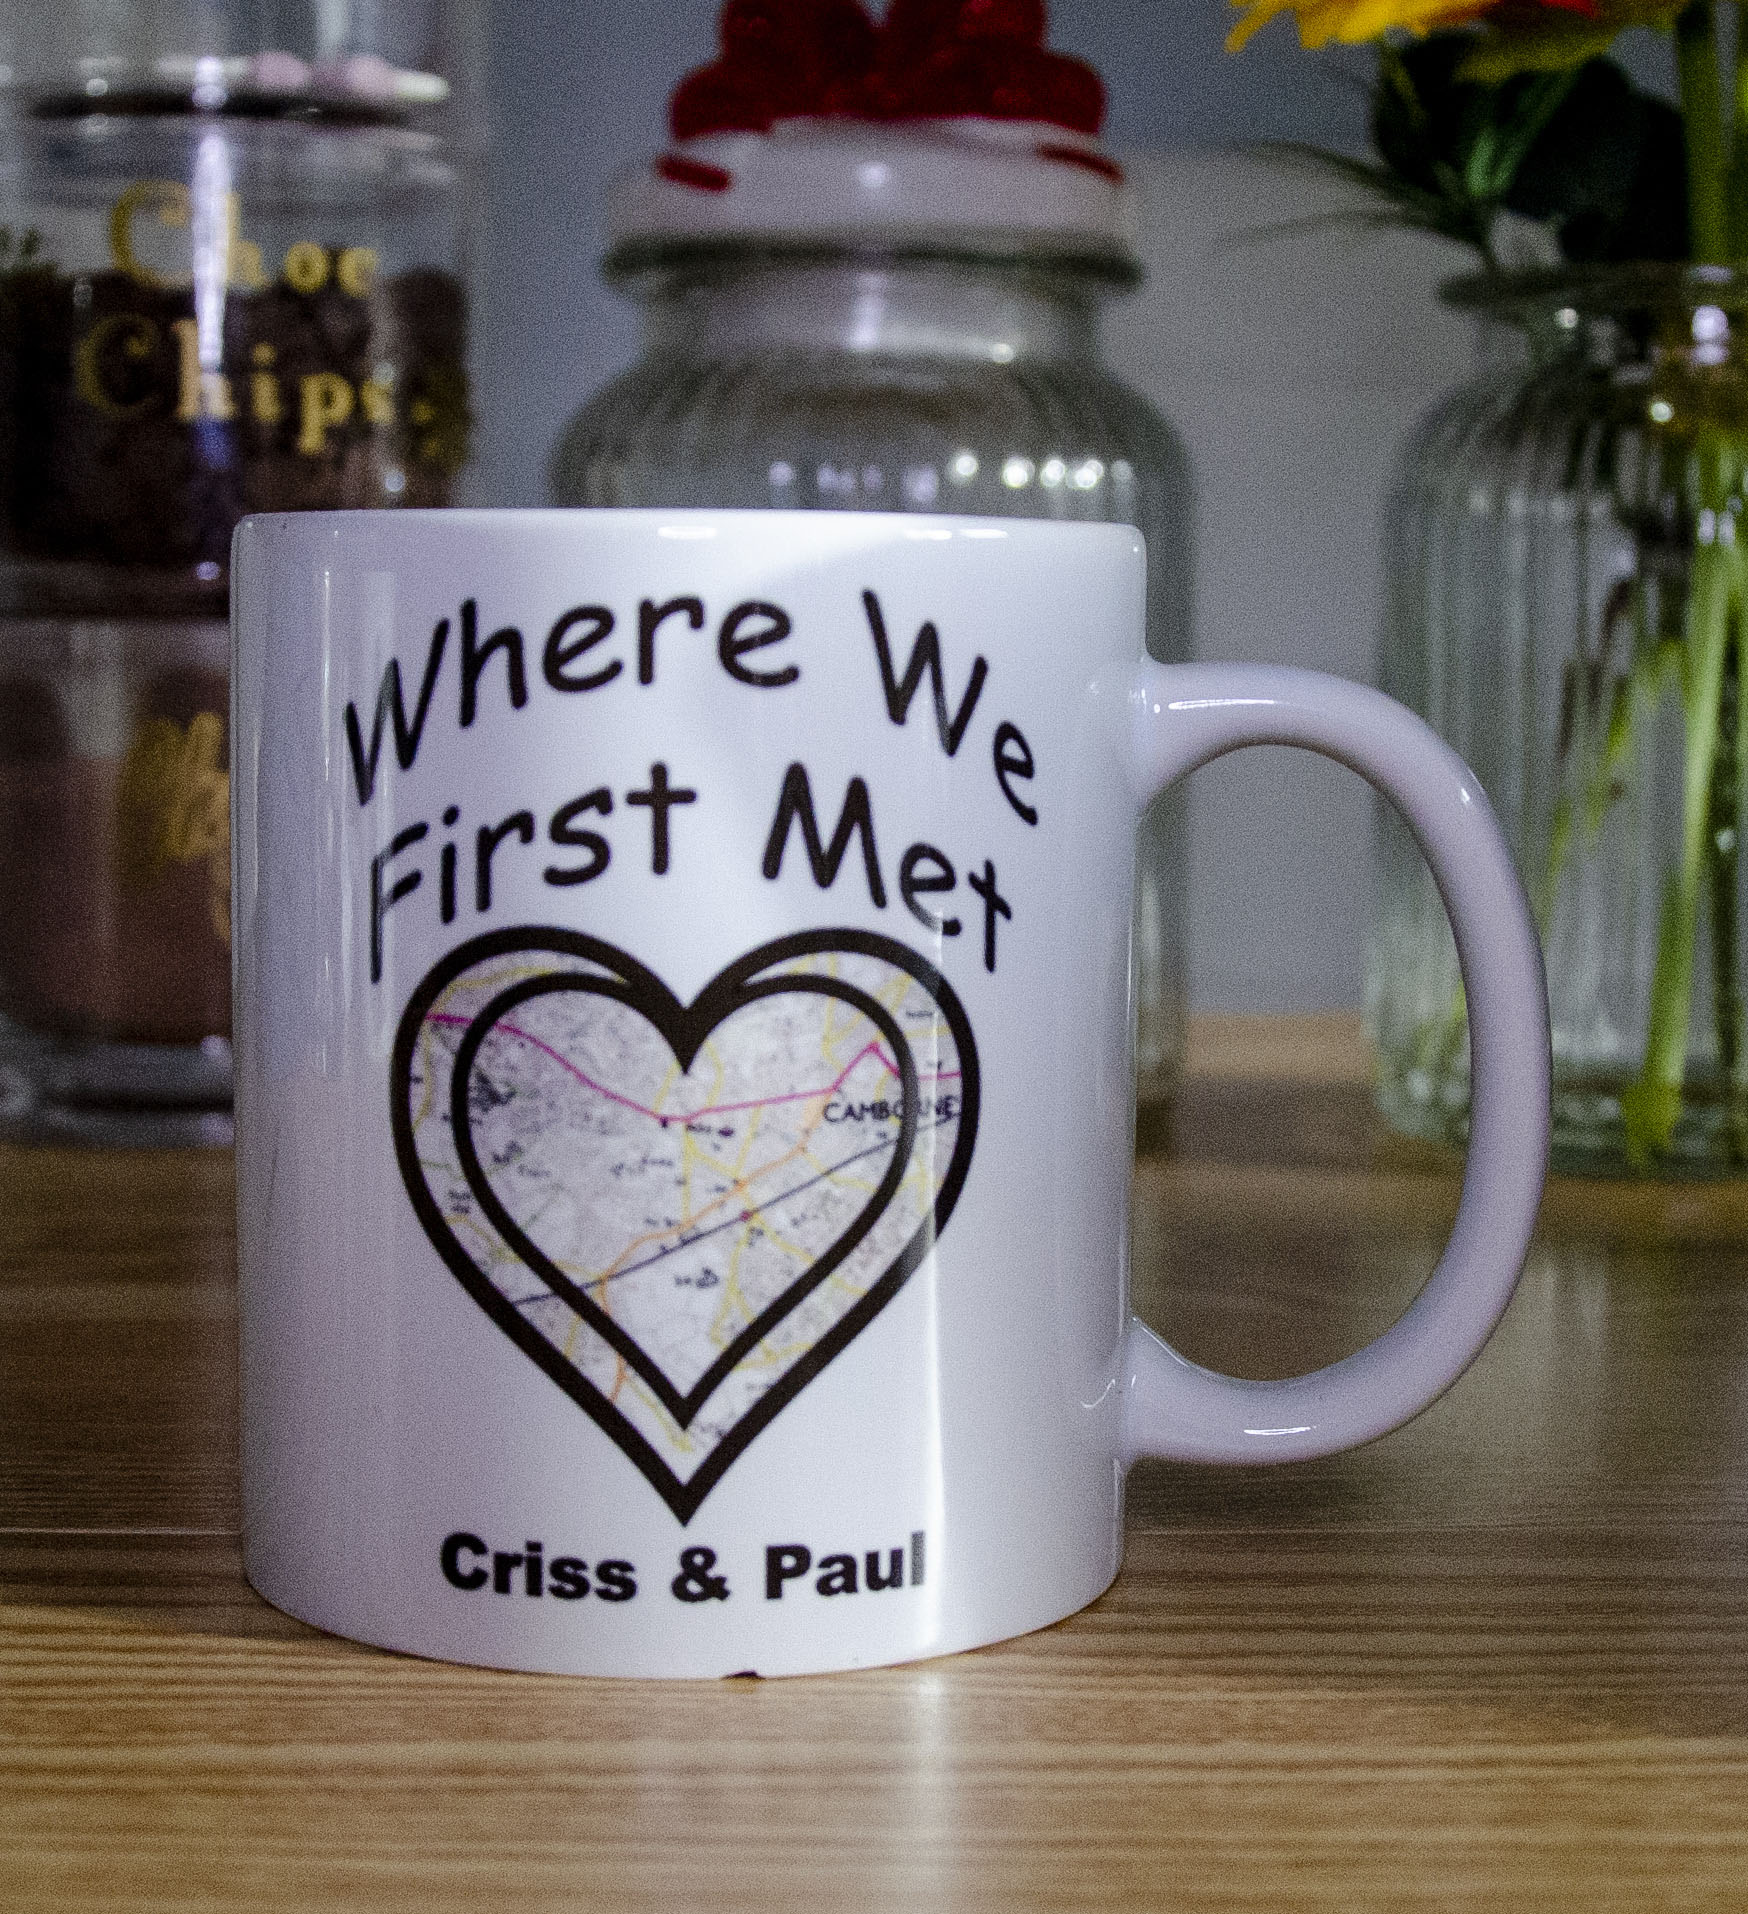 Personalised Mug 'Where We First Met' Contains Map or Image of where you first met